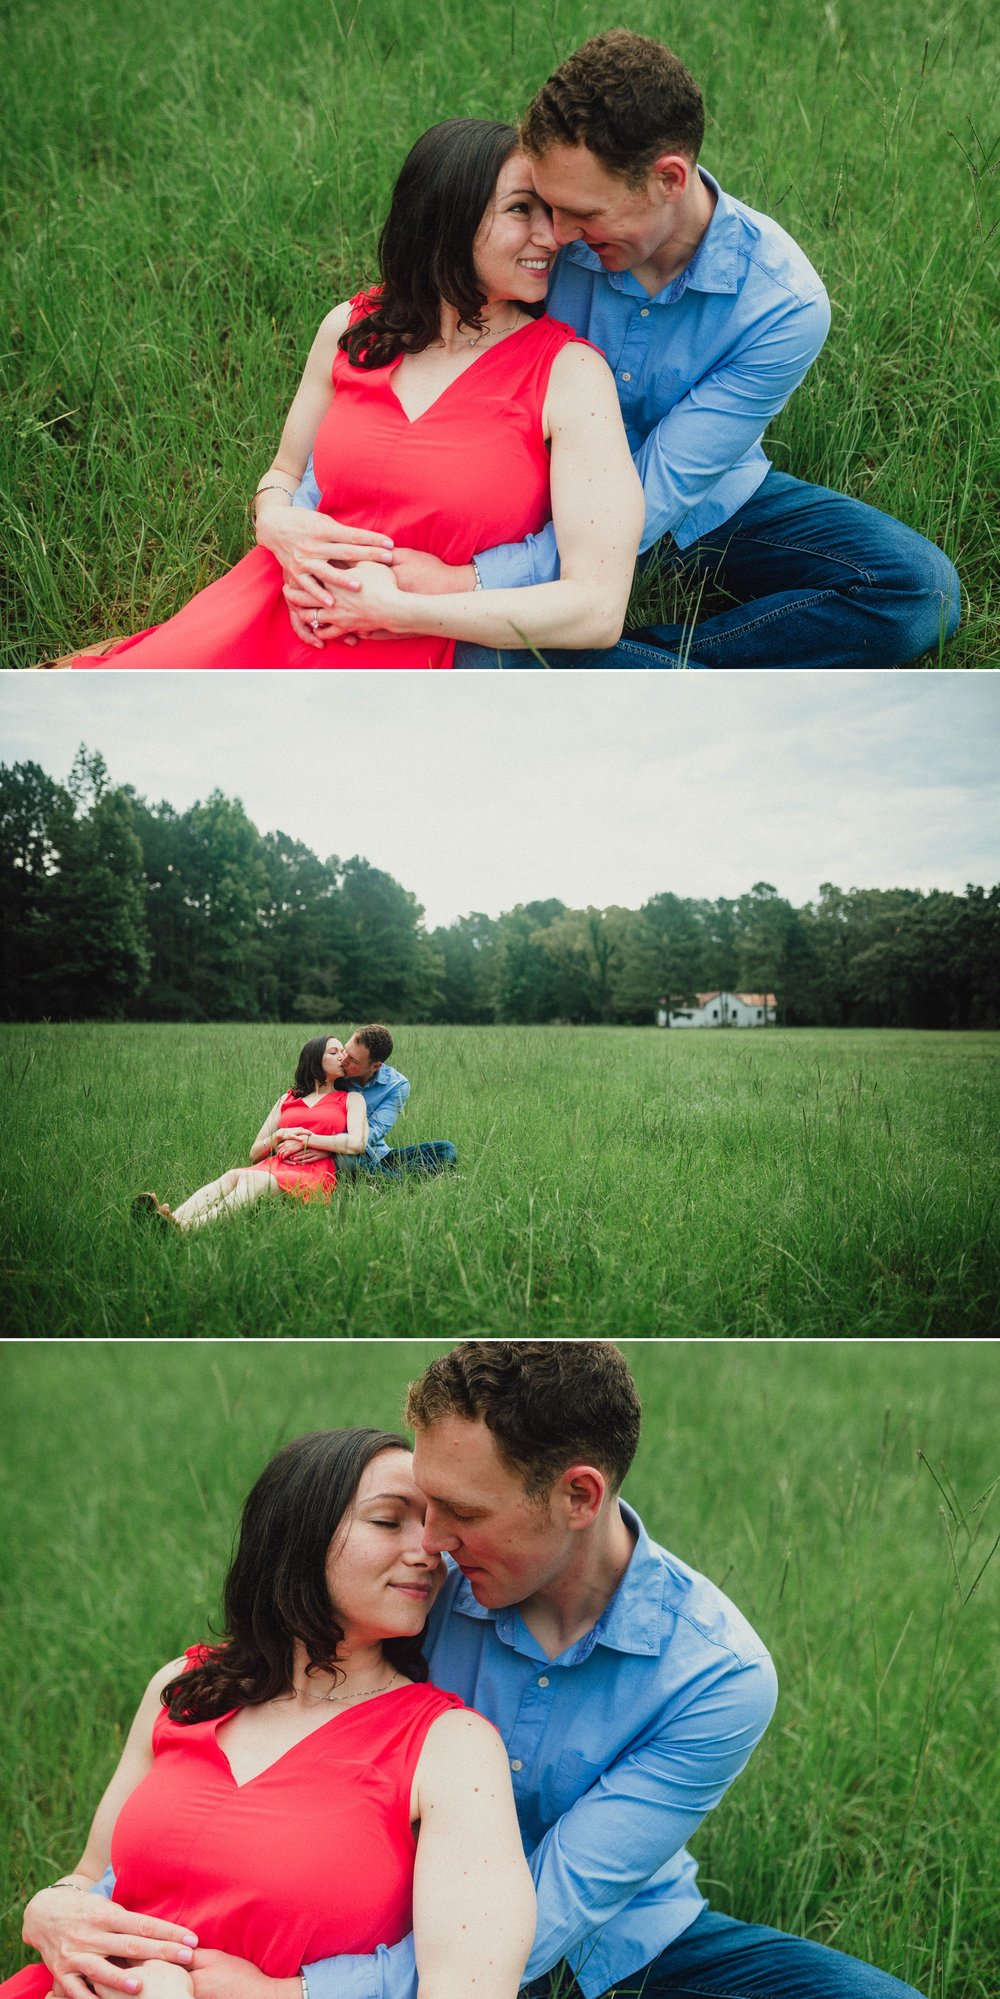 Sarah + Kyle - Engagement Photography Session in Fayetteville, North carolina 4.jpg